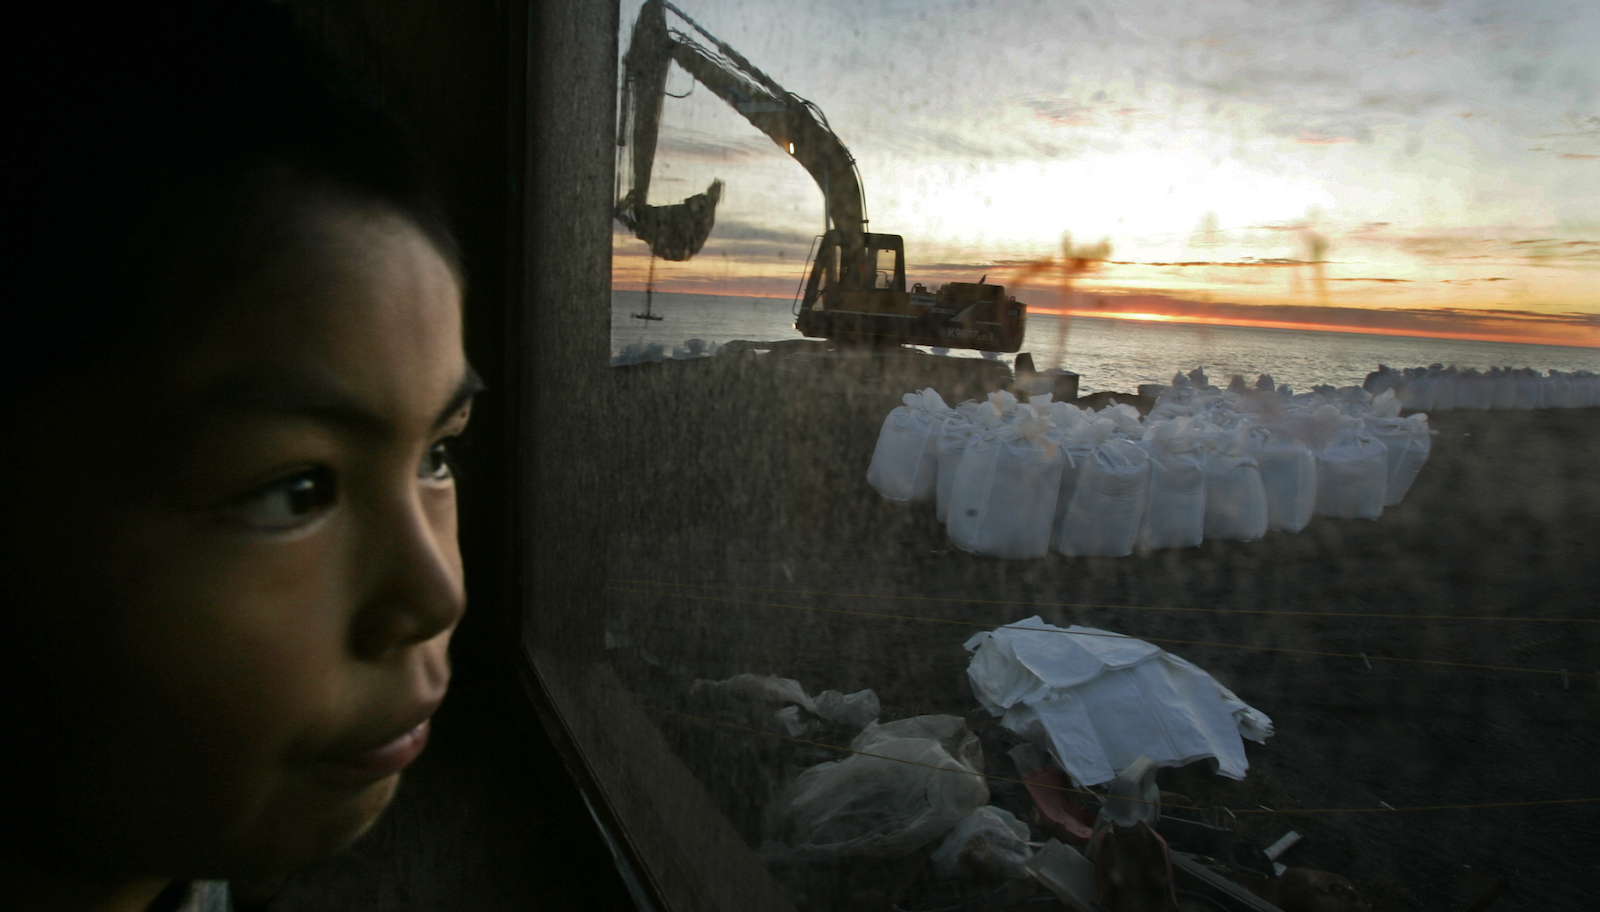 A boy watches workers fill sandbags for a seawall to shield his island from the Chukchi Sea.